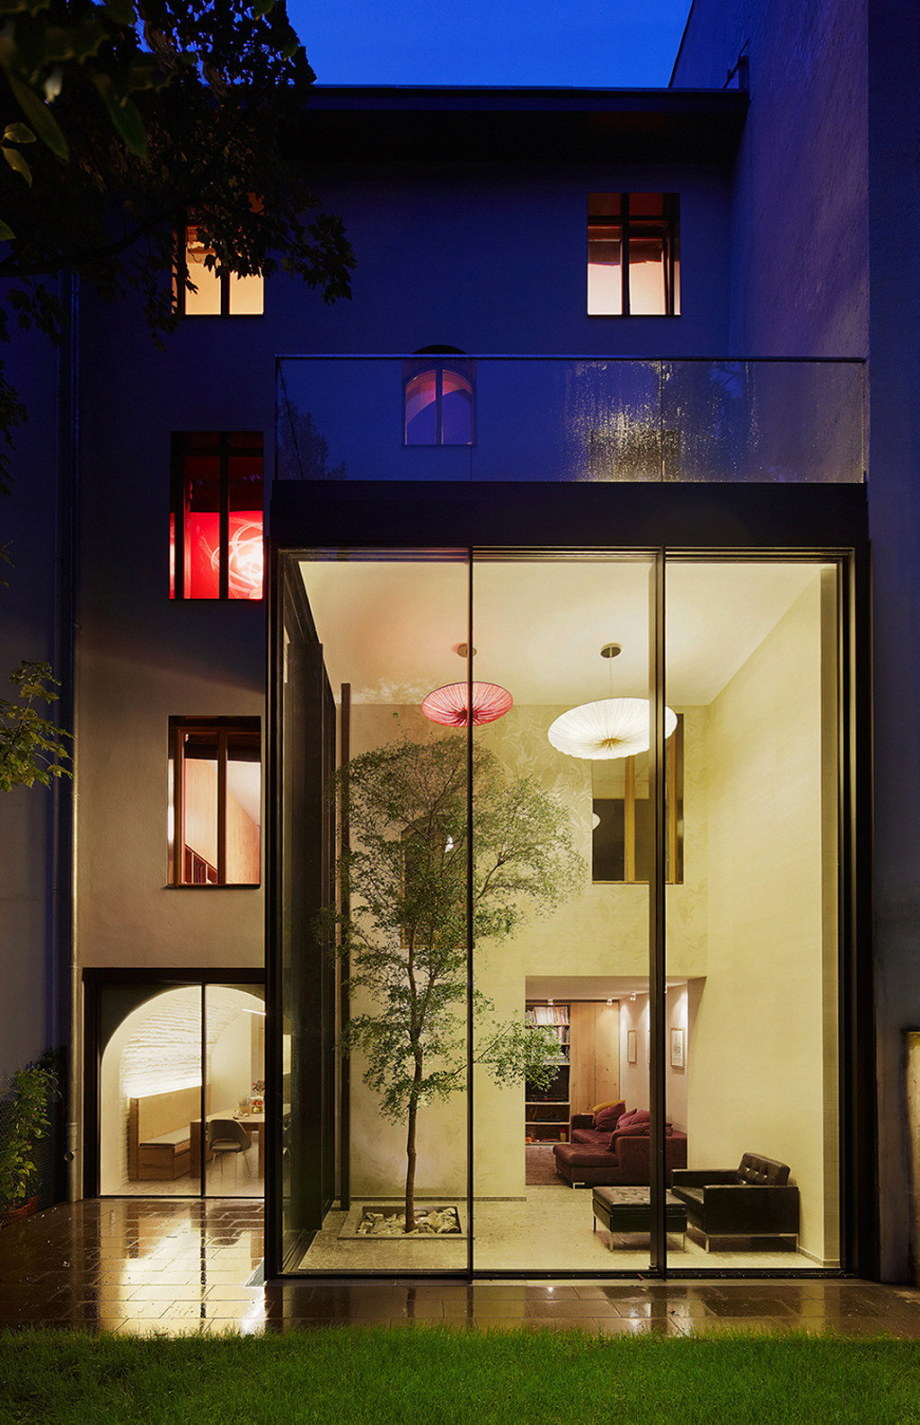 Townhouse Punktchen in Frankfurt 24